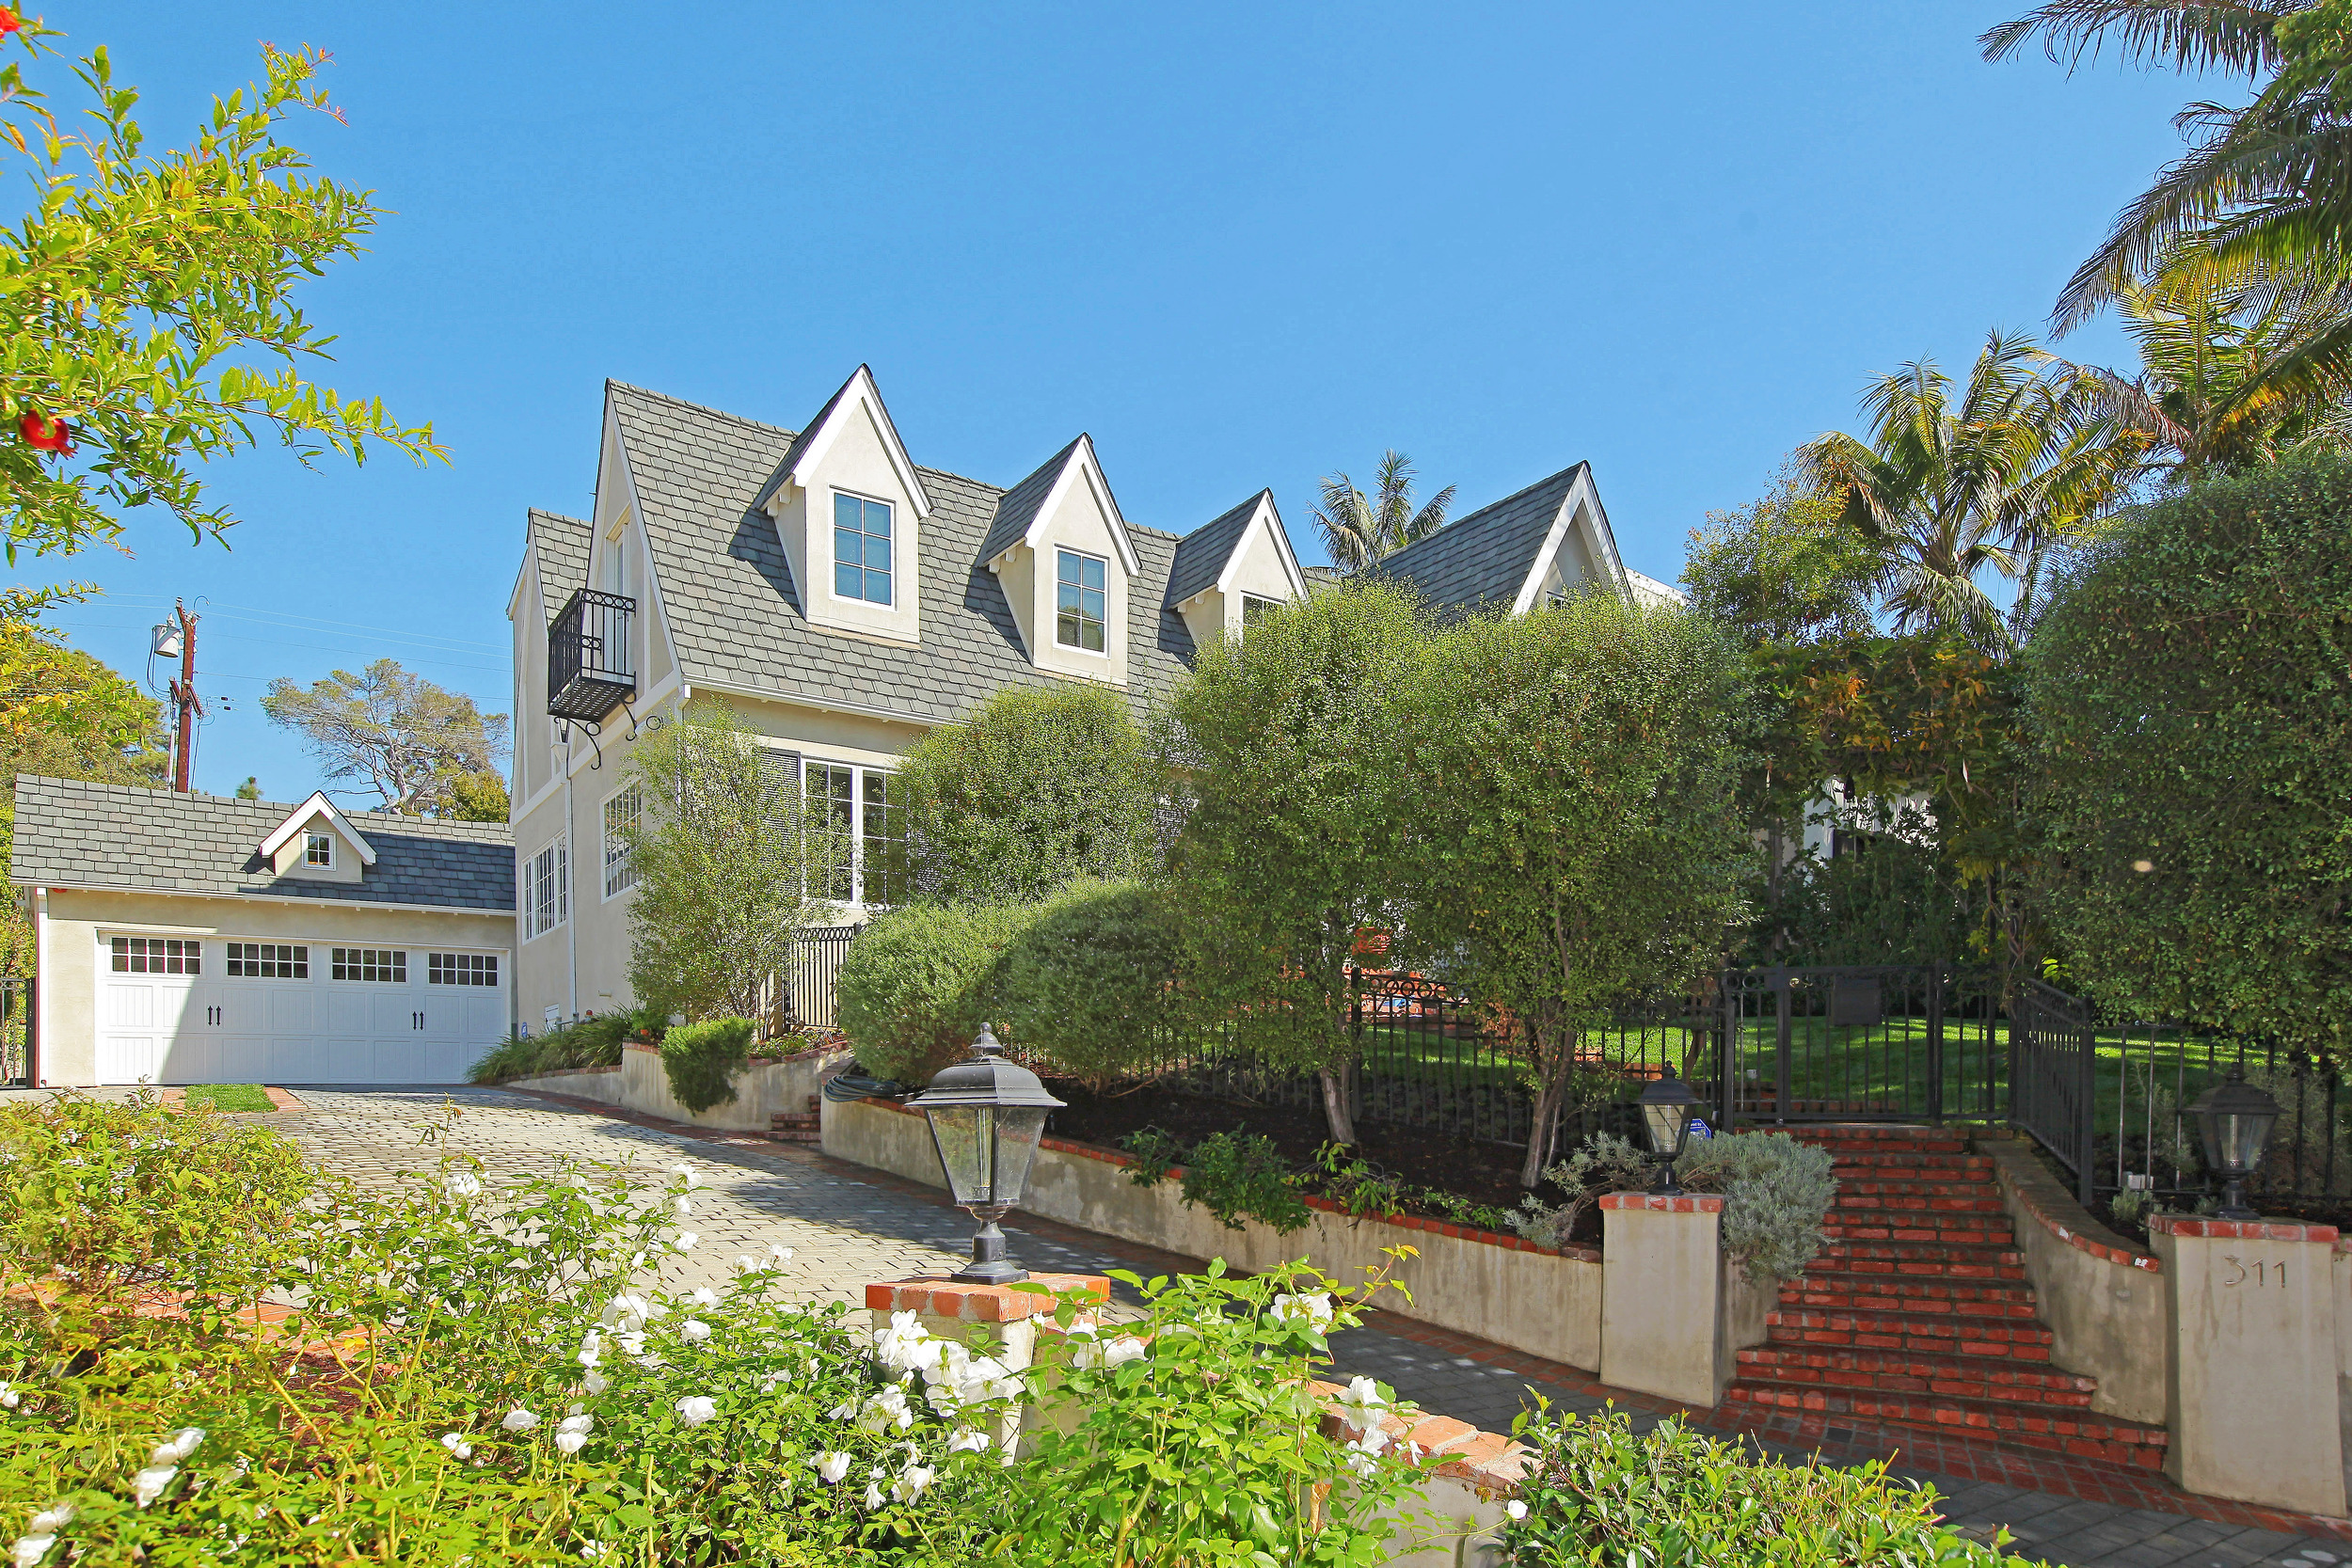 SANTA MONICA - 23rd Street - 3 Bed, 3 Bath